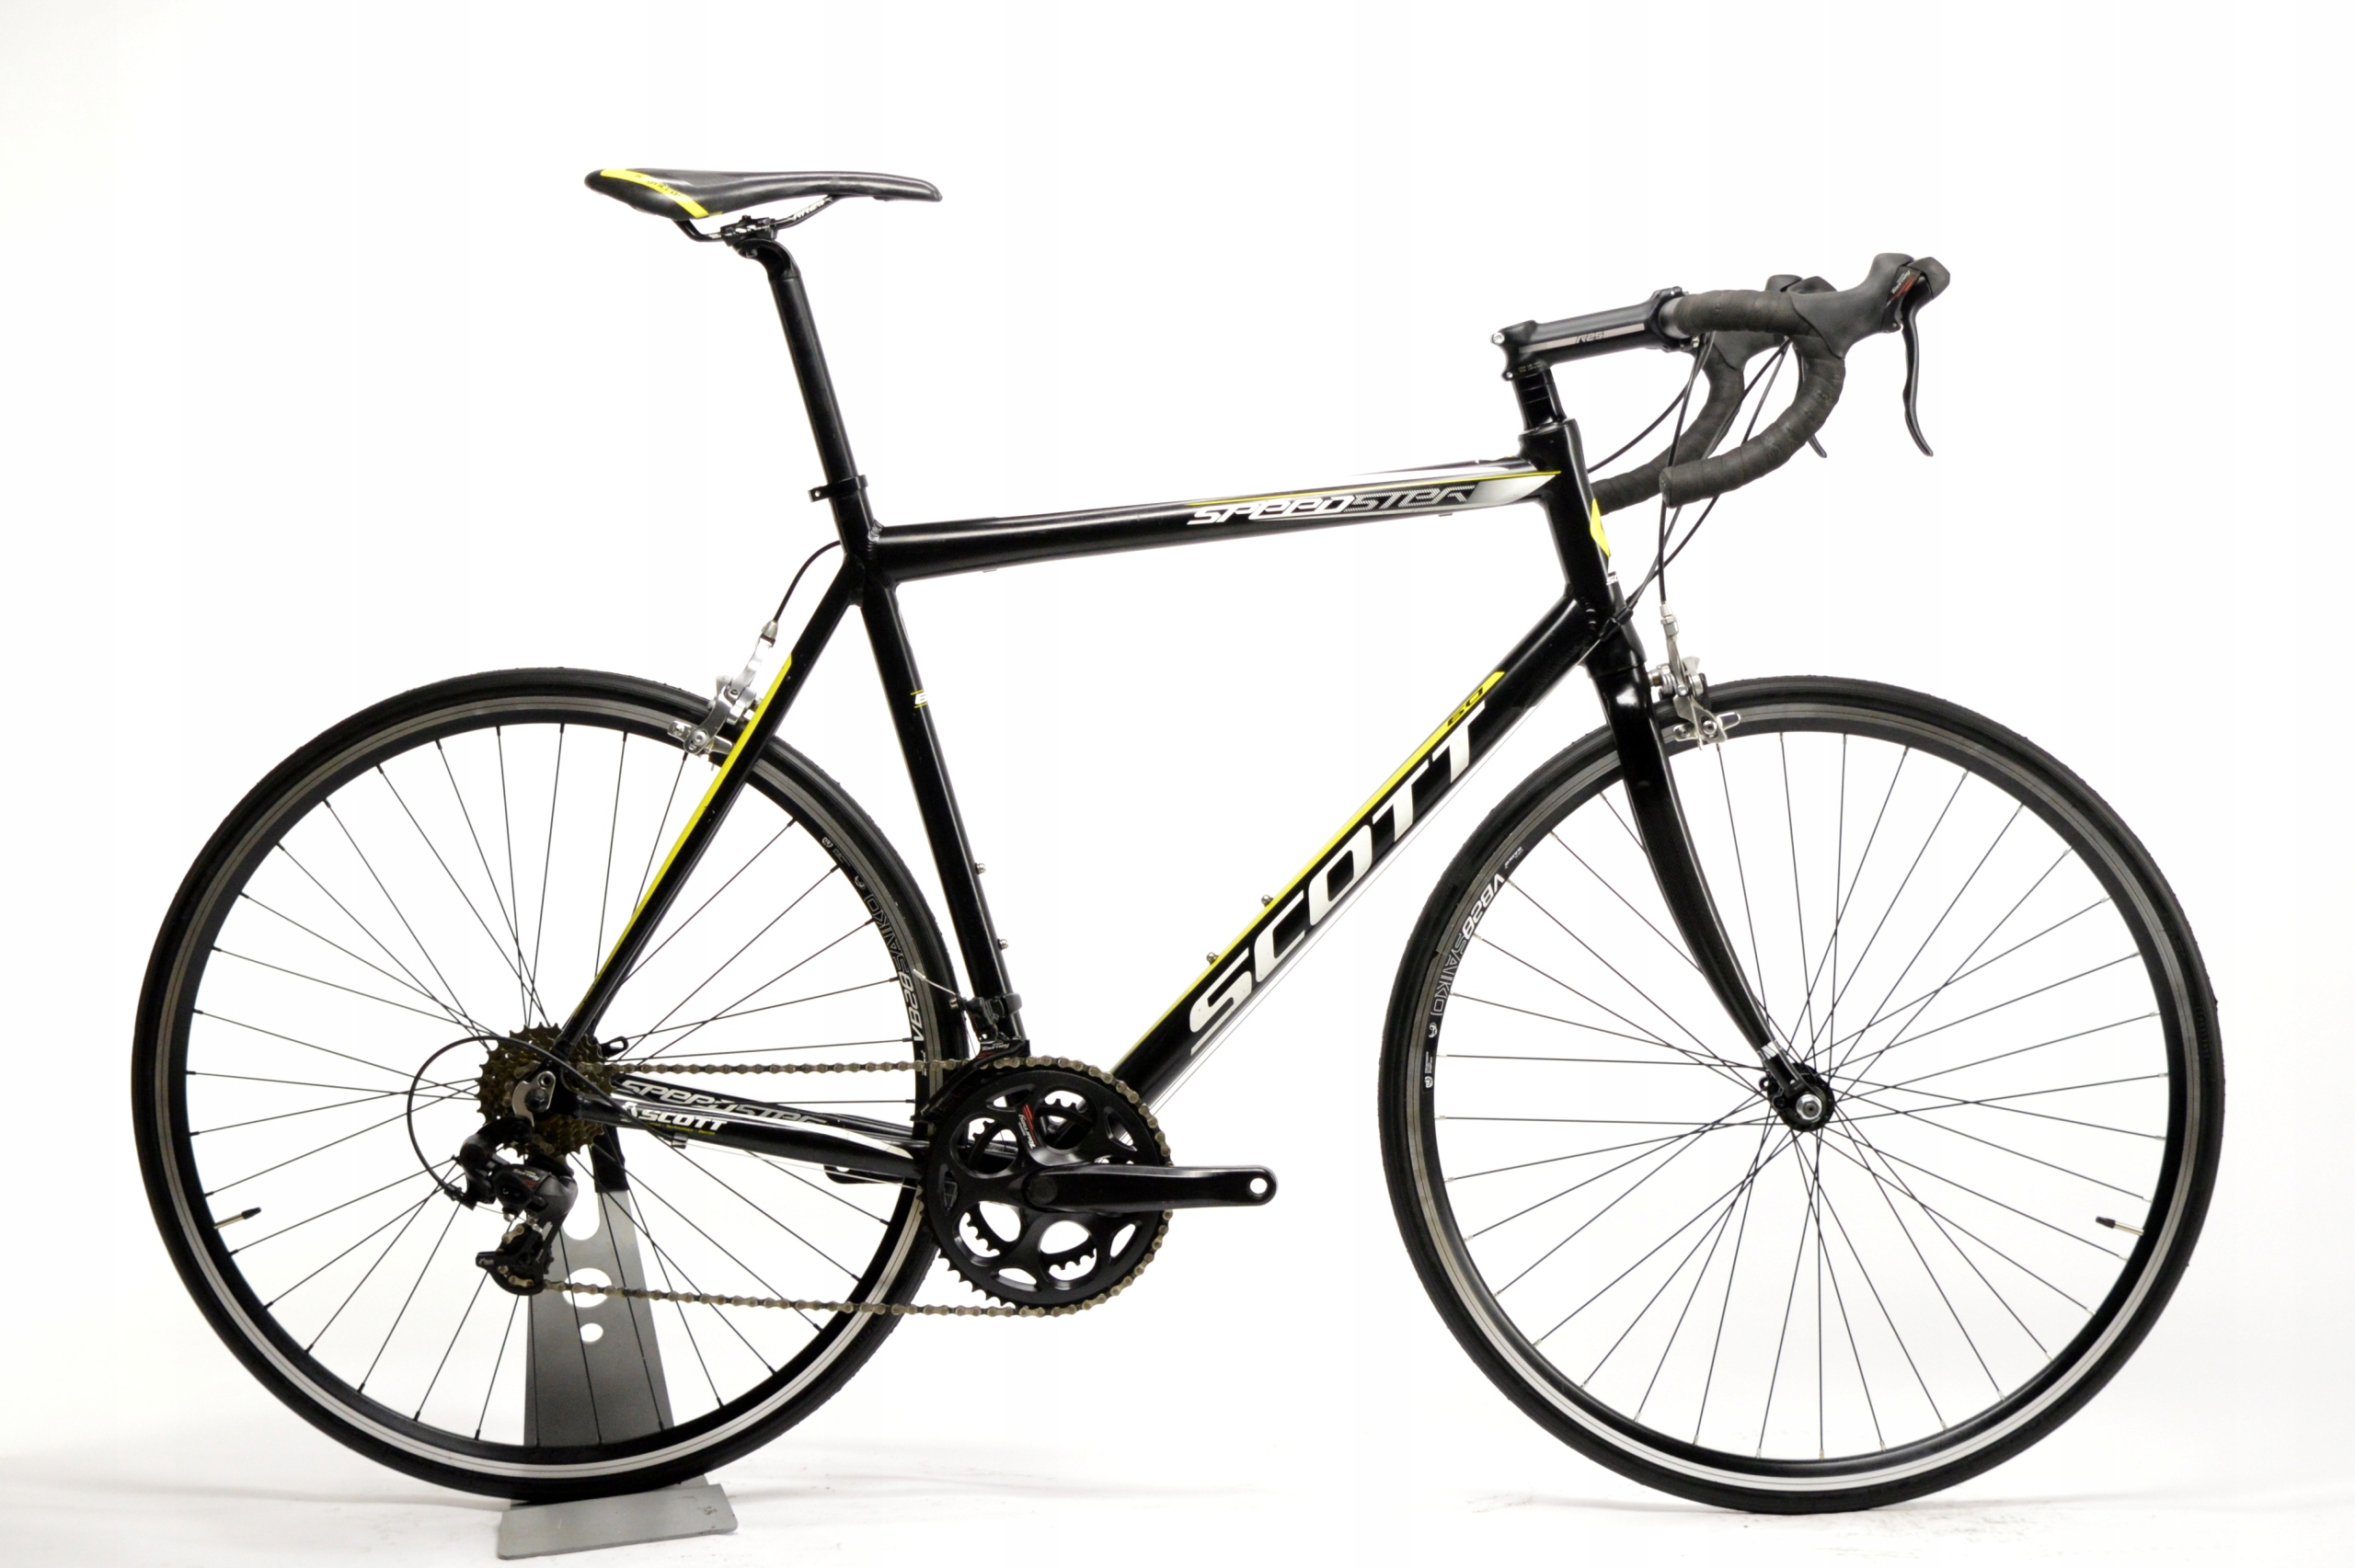 SCOTT SPEEDSTER 50 XL 60 szosa carbon szosowy